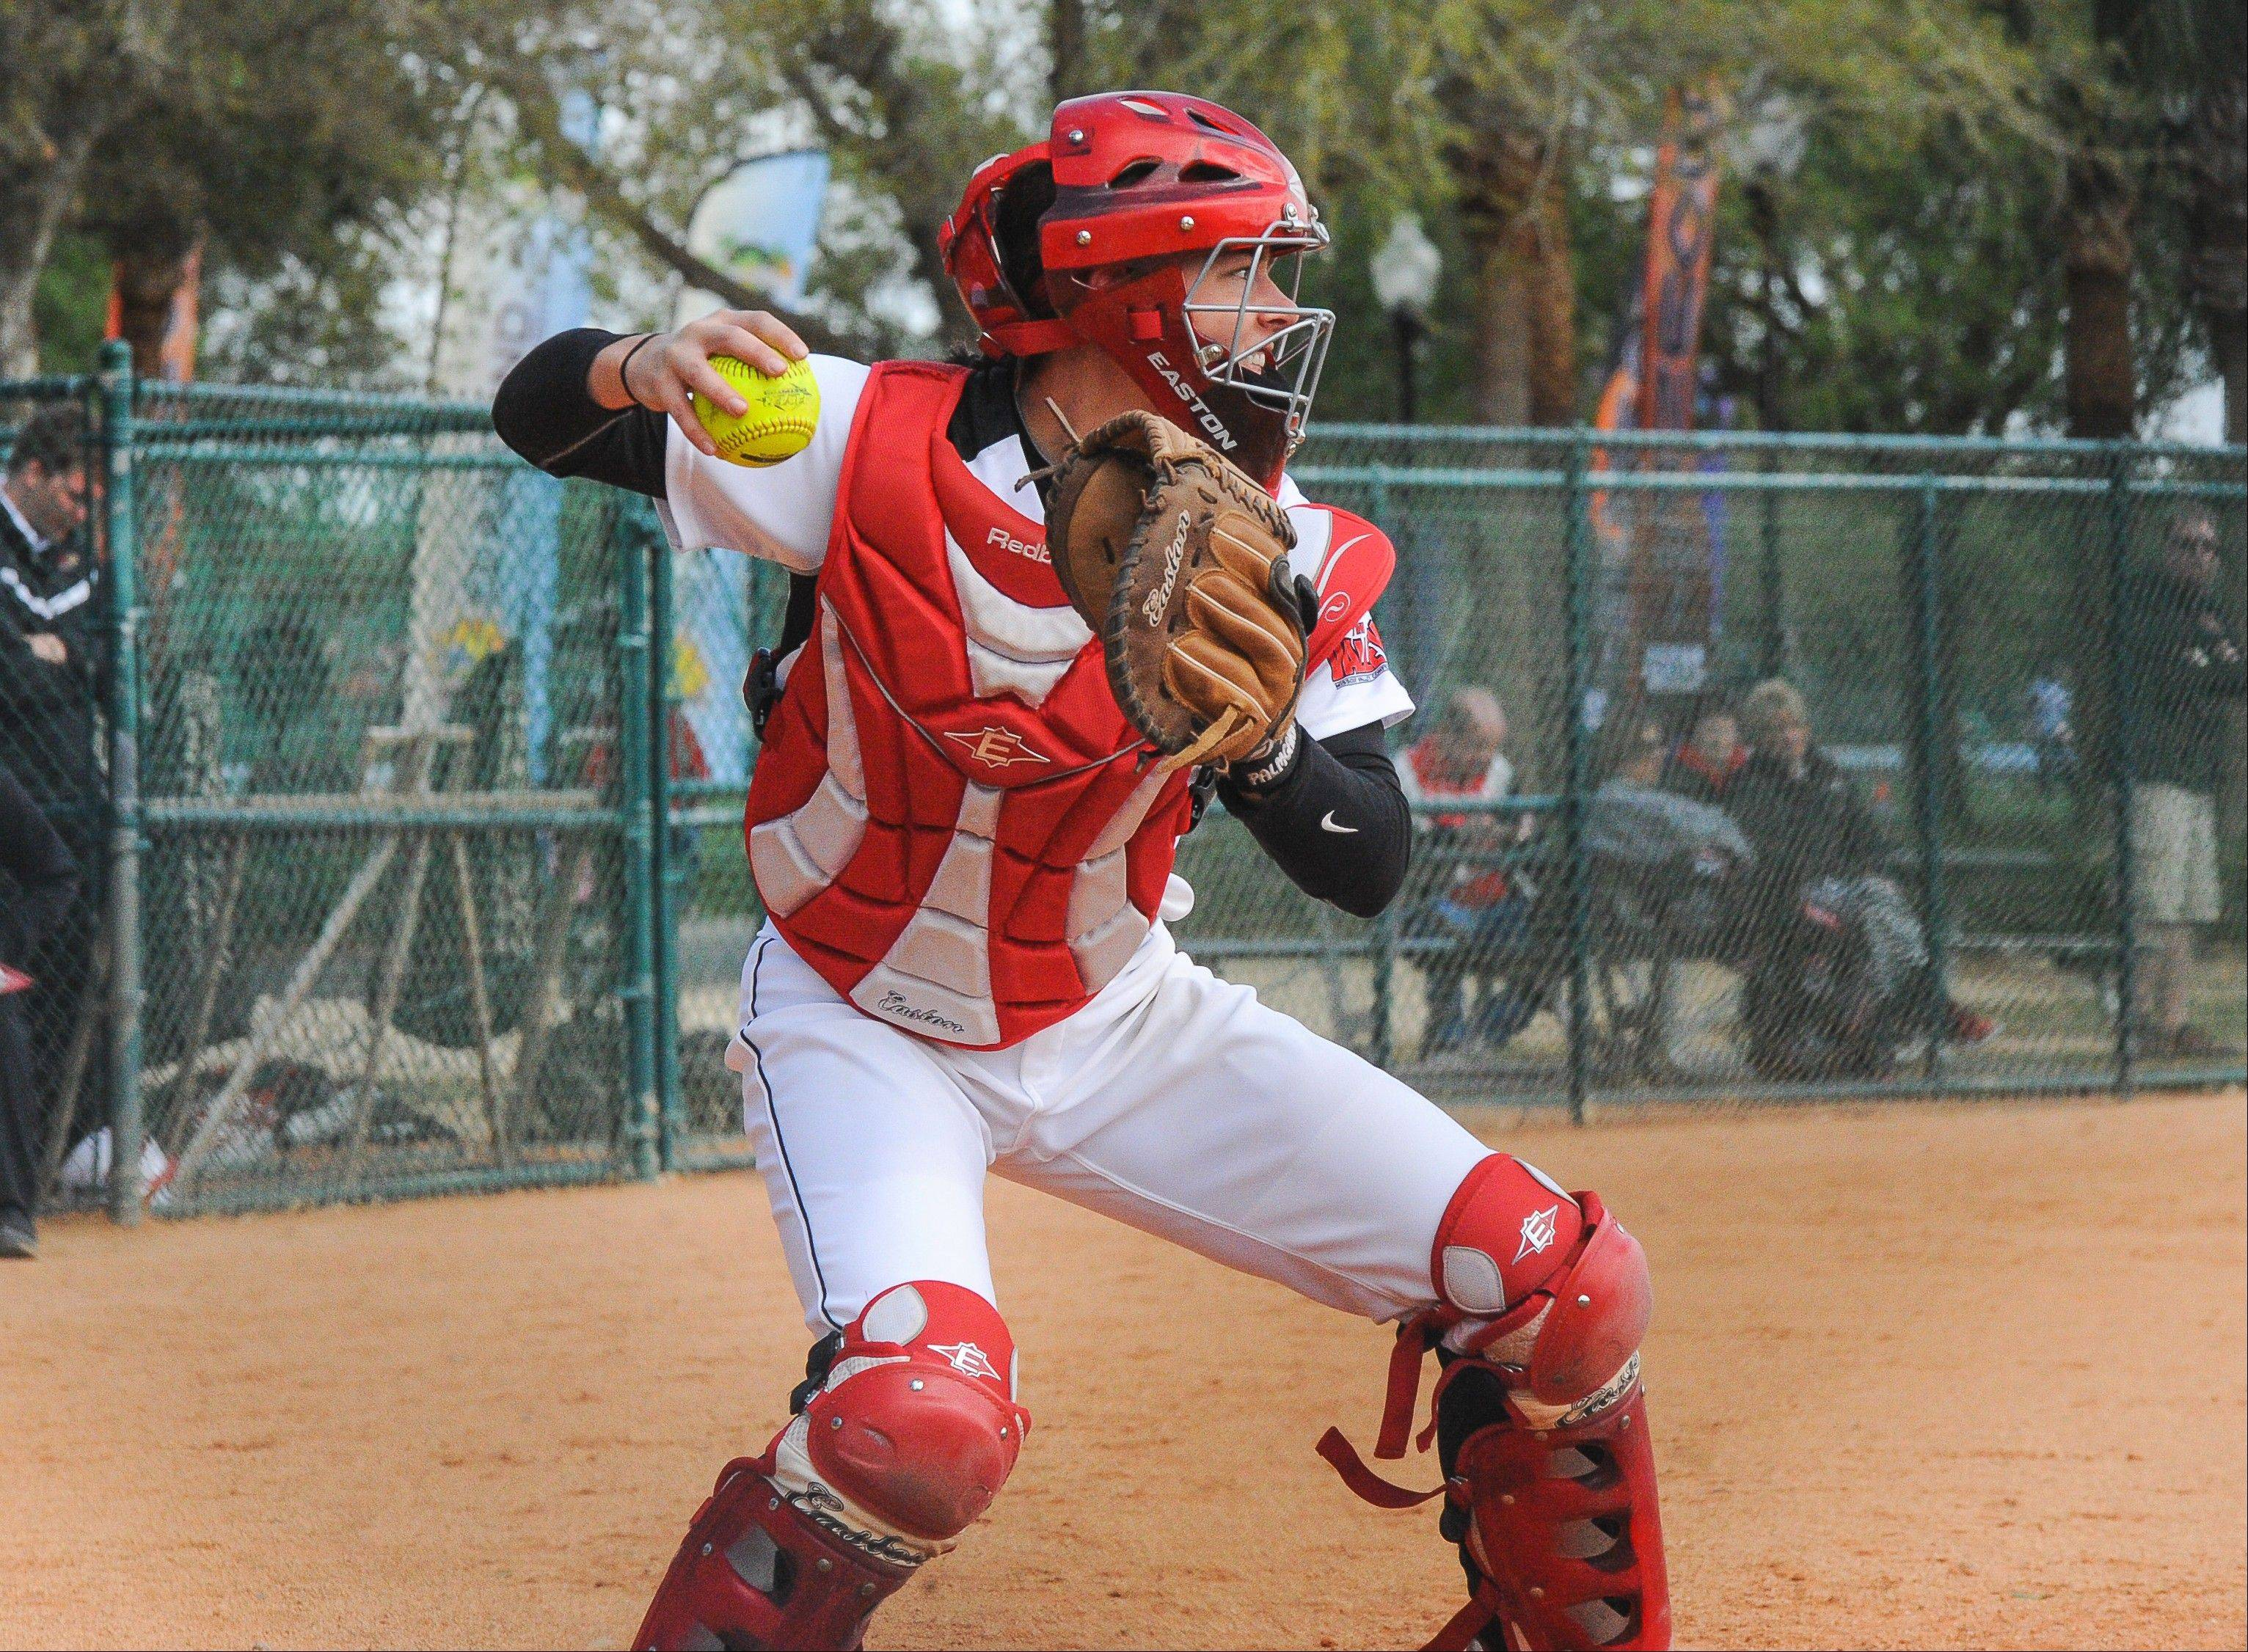 Bartlett graduate Elizabeth Kay is enjoying a strong start to the softball season at Illinois State.